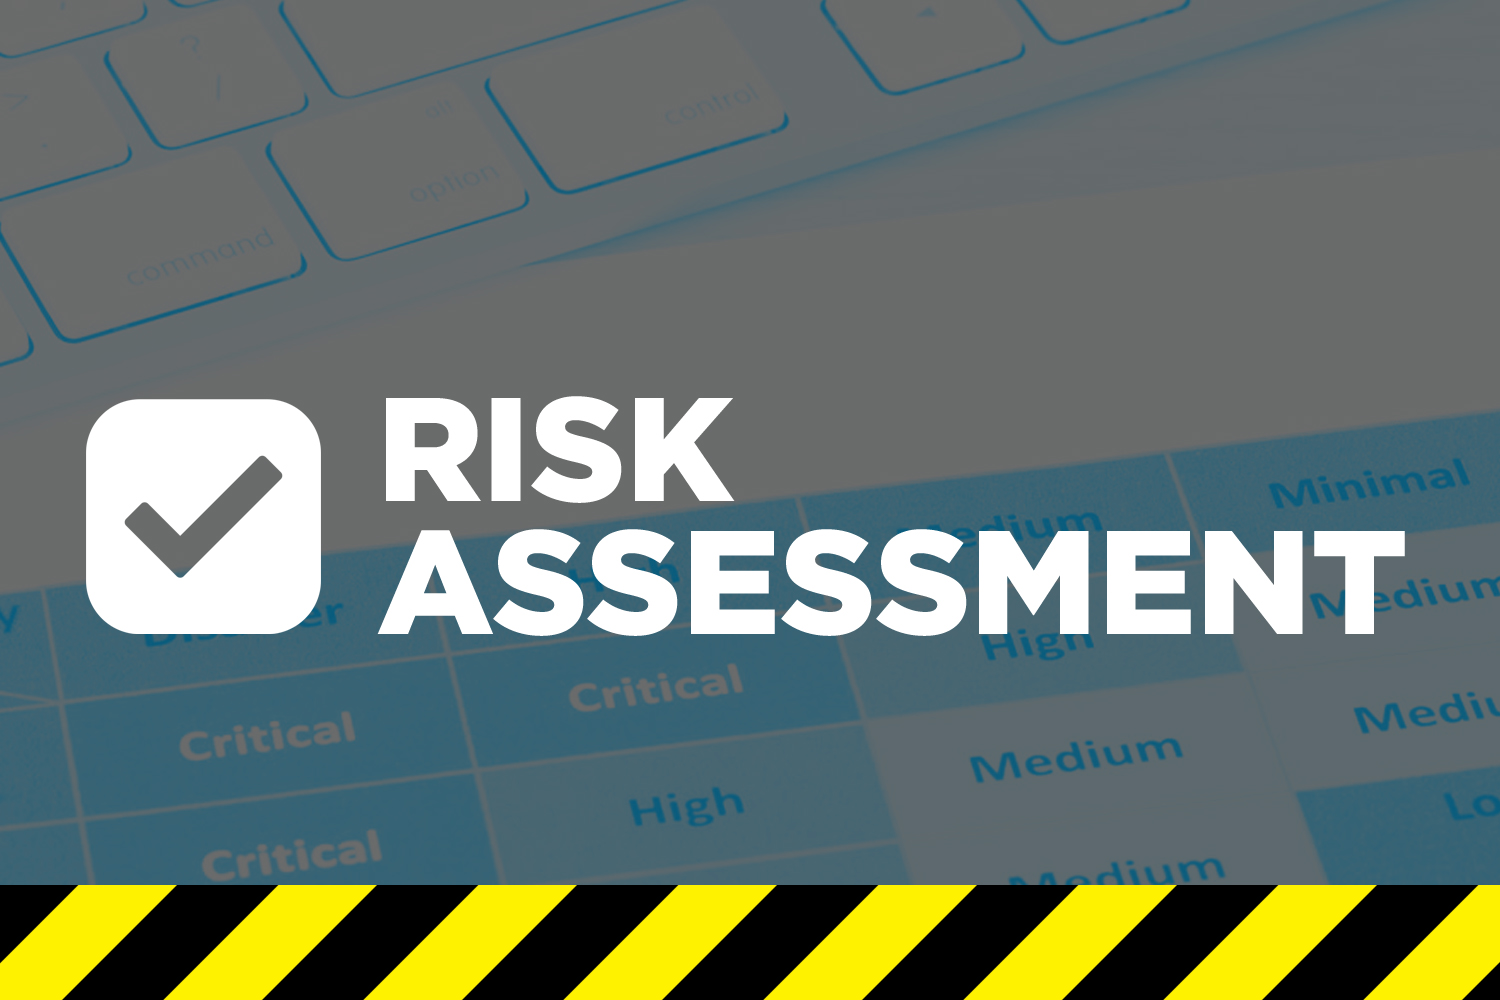 risk-assessment-medium-banner.jpg